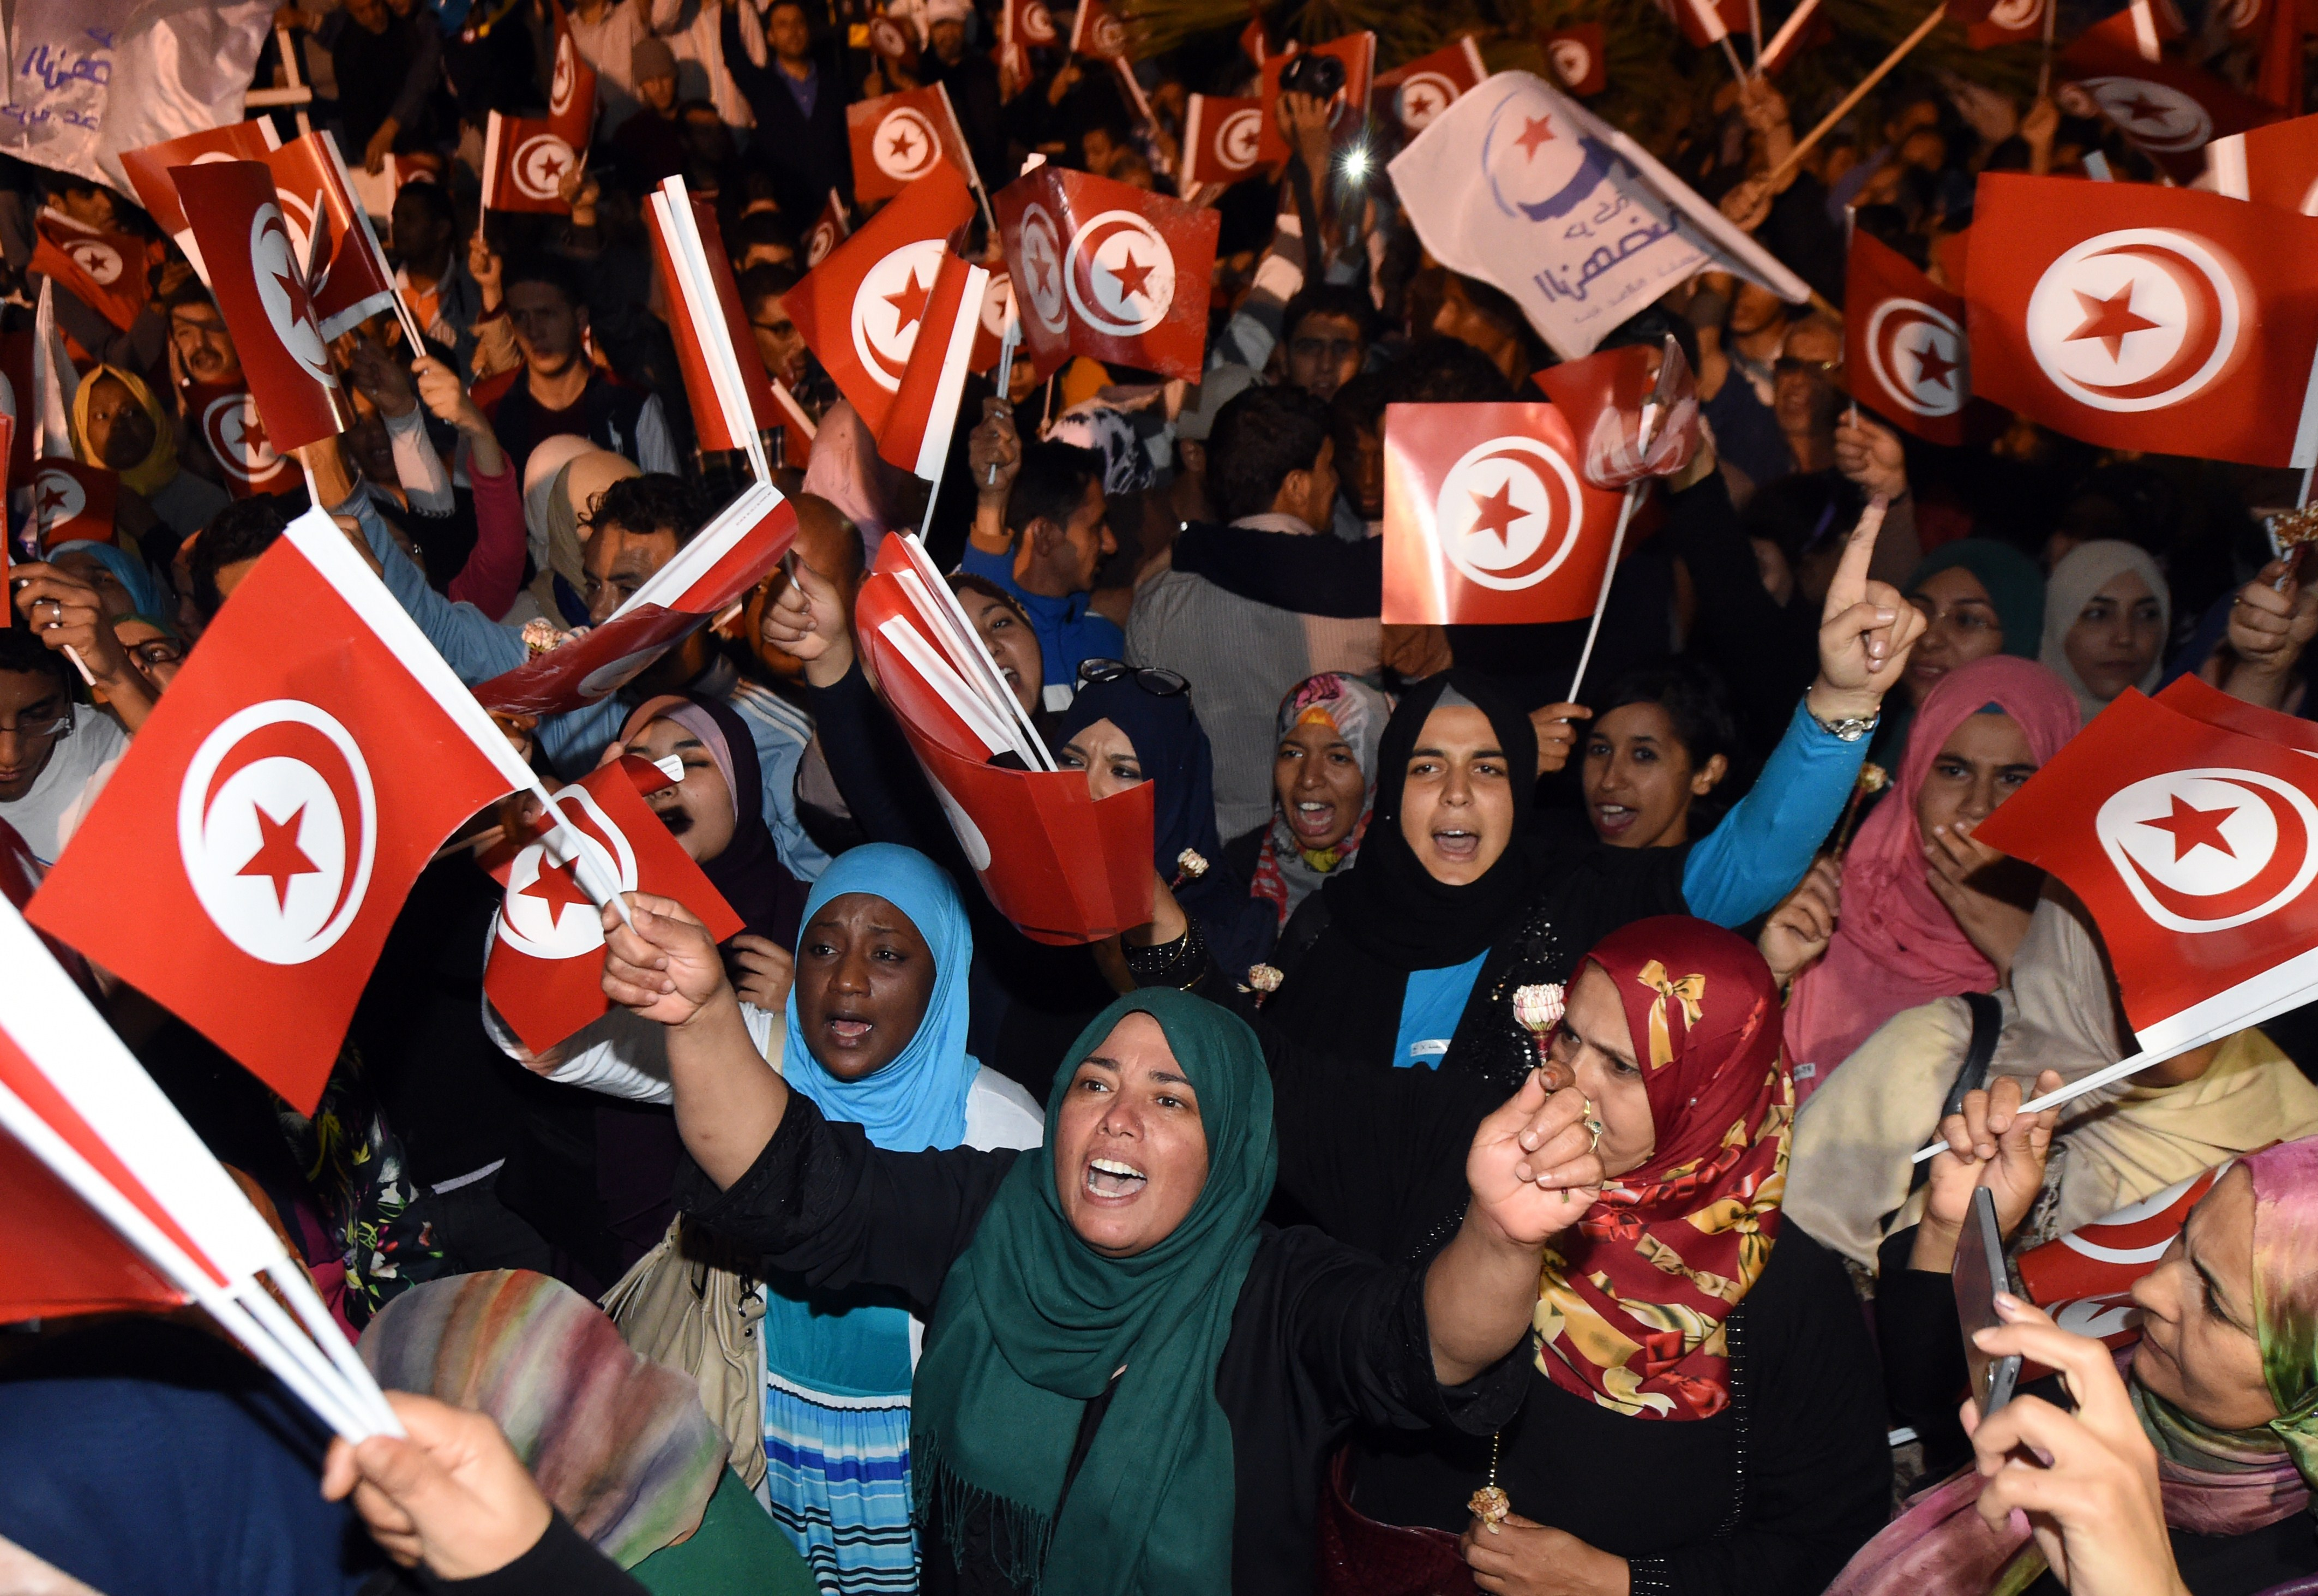 "Tunisian Ennadha Party supporters wave flags as they wait for the party's leader to give a speech on October 27, 2014 in Tunis following the legislative election. The leader of Tunisia's Islamist Ennahda party congratulated his secular rival on October 26 for ""his party's win"" in a general election seen as critical for democracy in the cradle of the Arab Spring. The first parliamentary election since Tunisia's 2011 revolution pitted Ennahda against secular opponent Nidaa Tounes, with an array of leftist and Islamist groups also taking part. AFP PHOTO / FADEL SENNA        (Photo credit should read FADEL SENNA/AFP/Getty Images)"